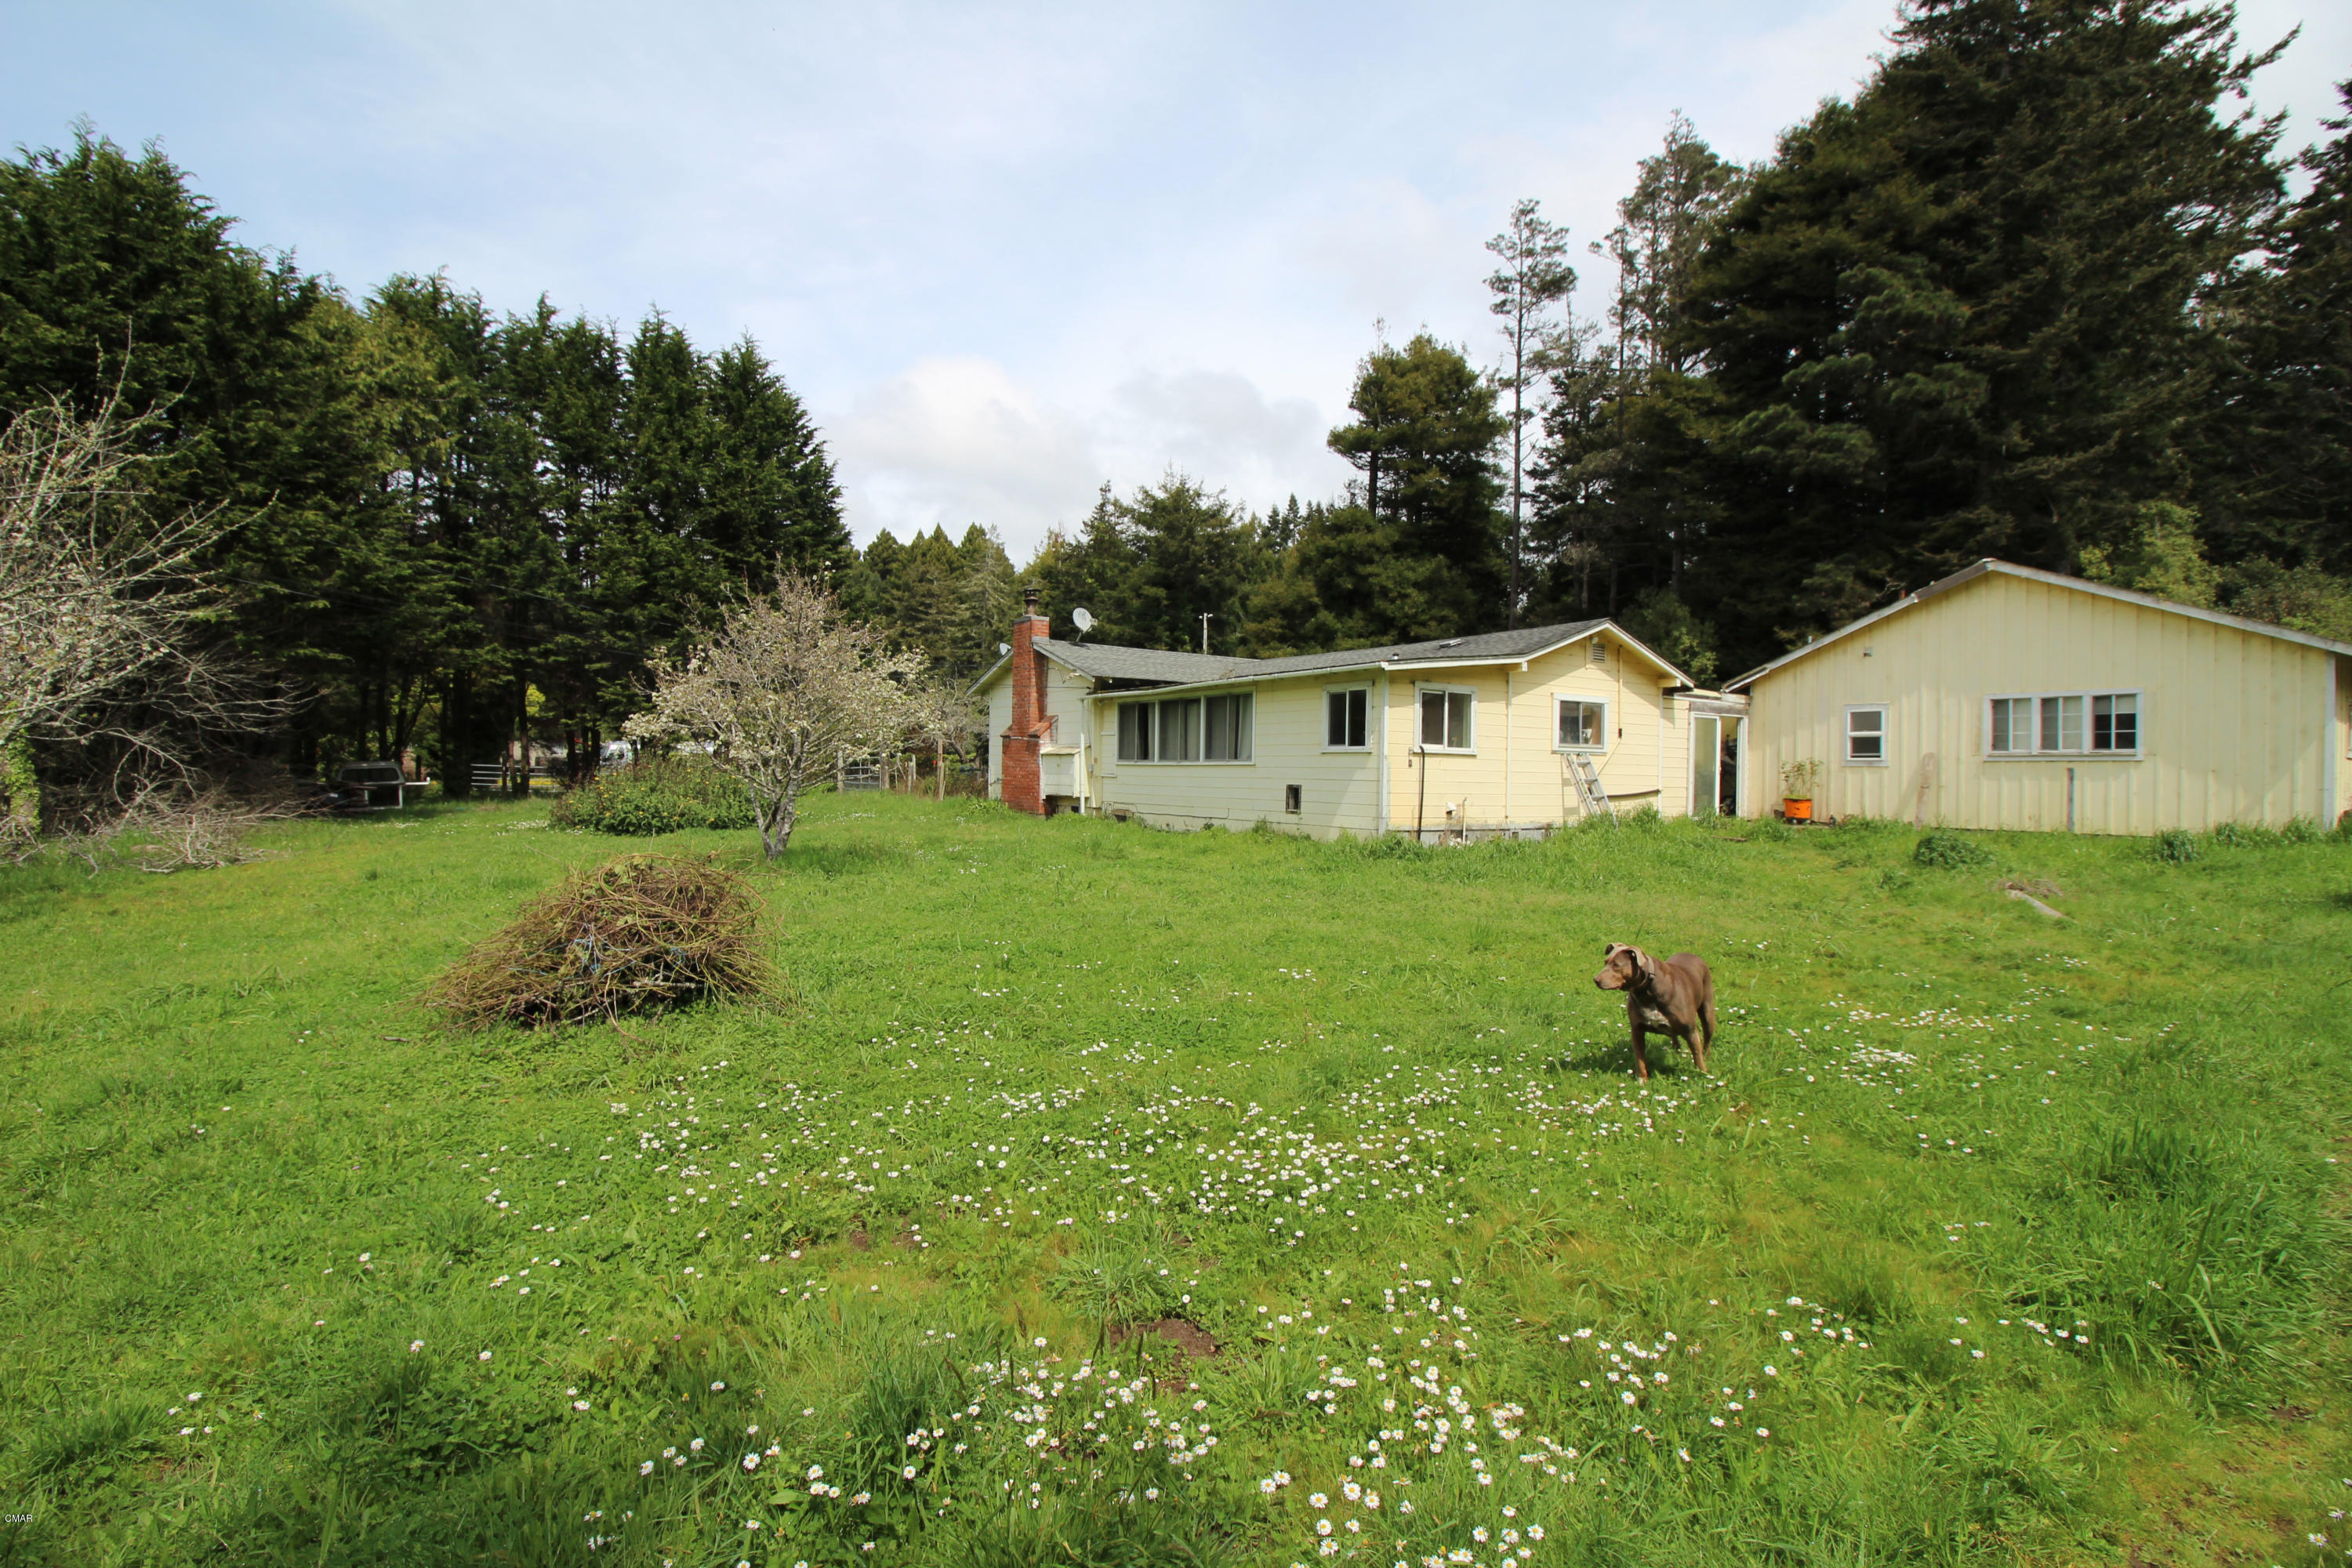 Single Family Home for Sale at 32261 Ellison Way 32261 Ellison Way Fort Bragg, California 95437 United States